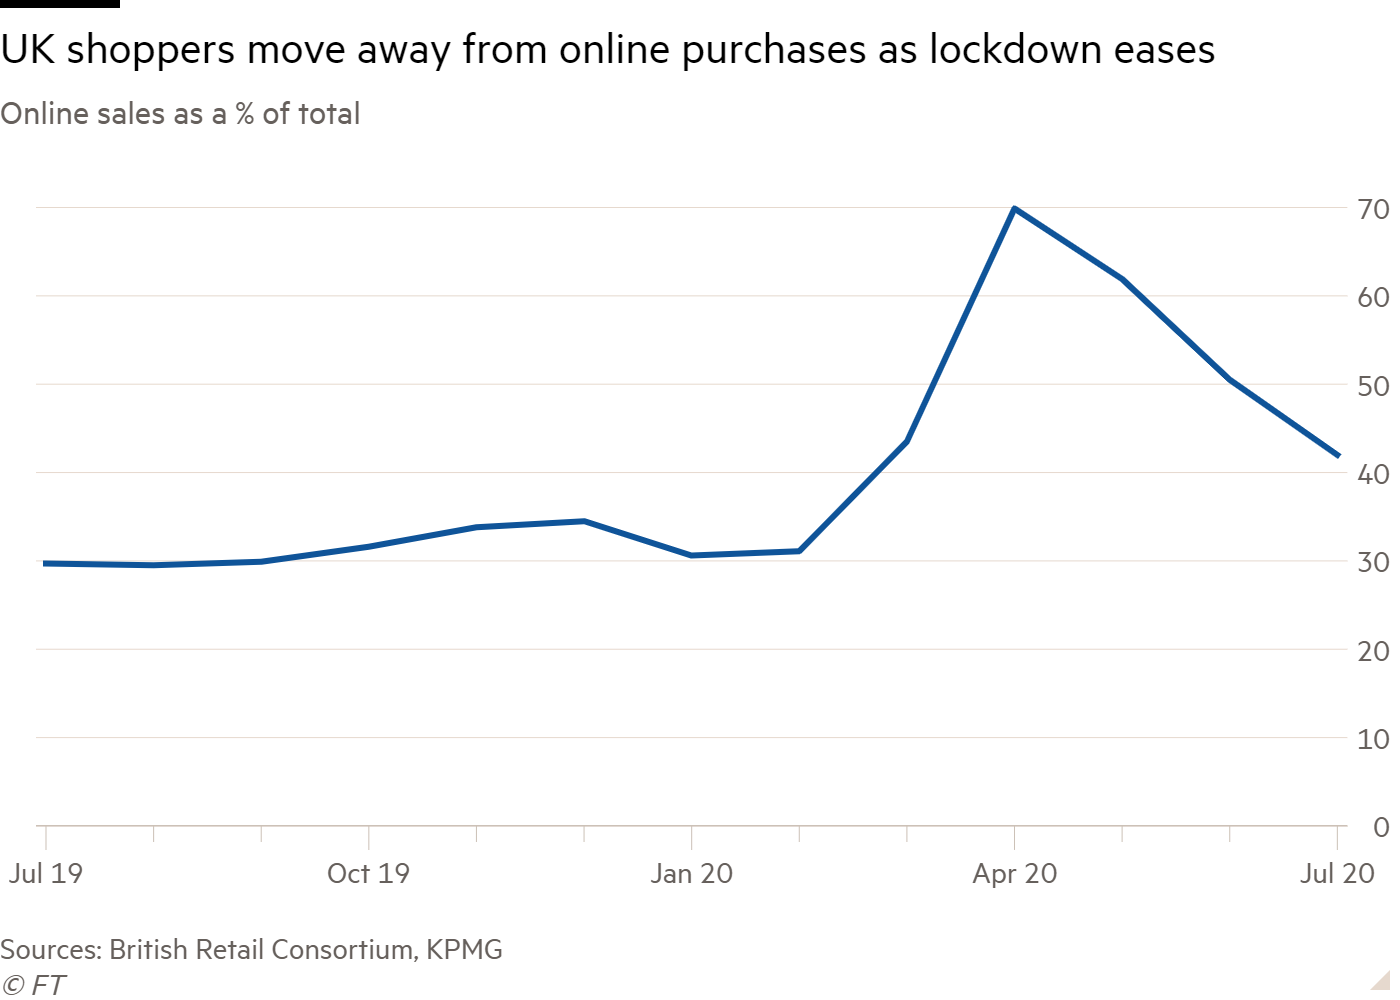 Line chart of Online sales as a % of total  showing Britons shift away from online shopping after lockdown